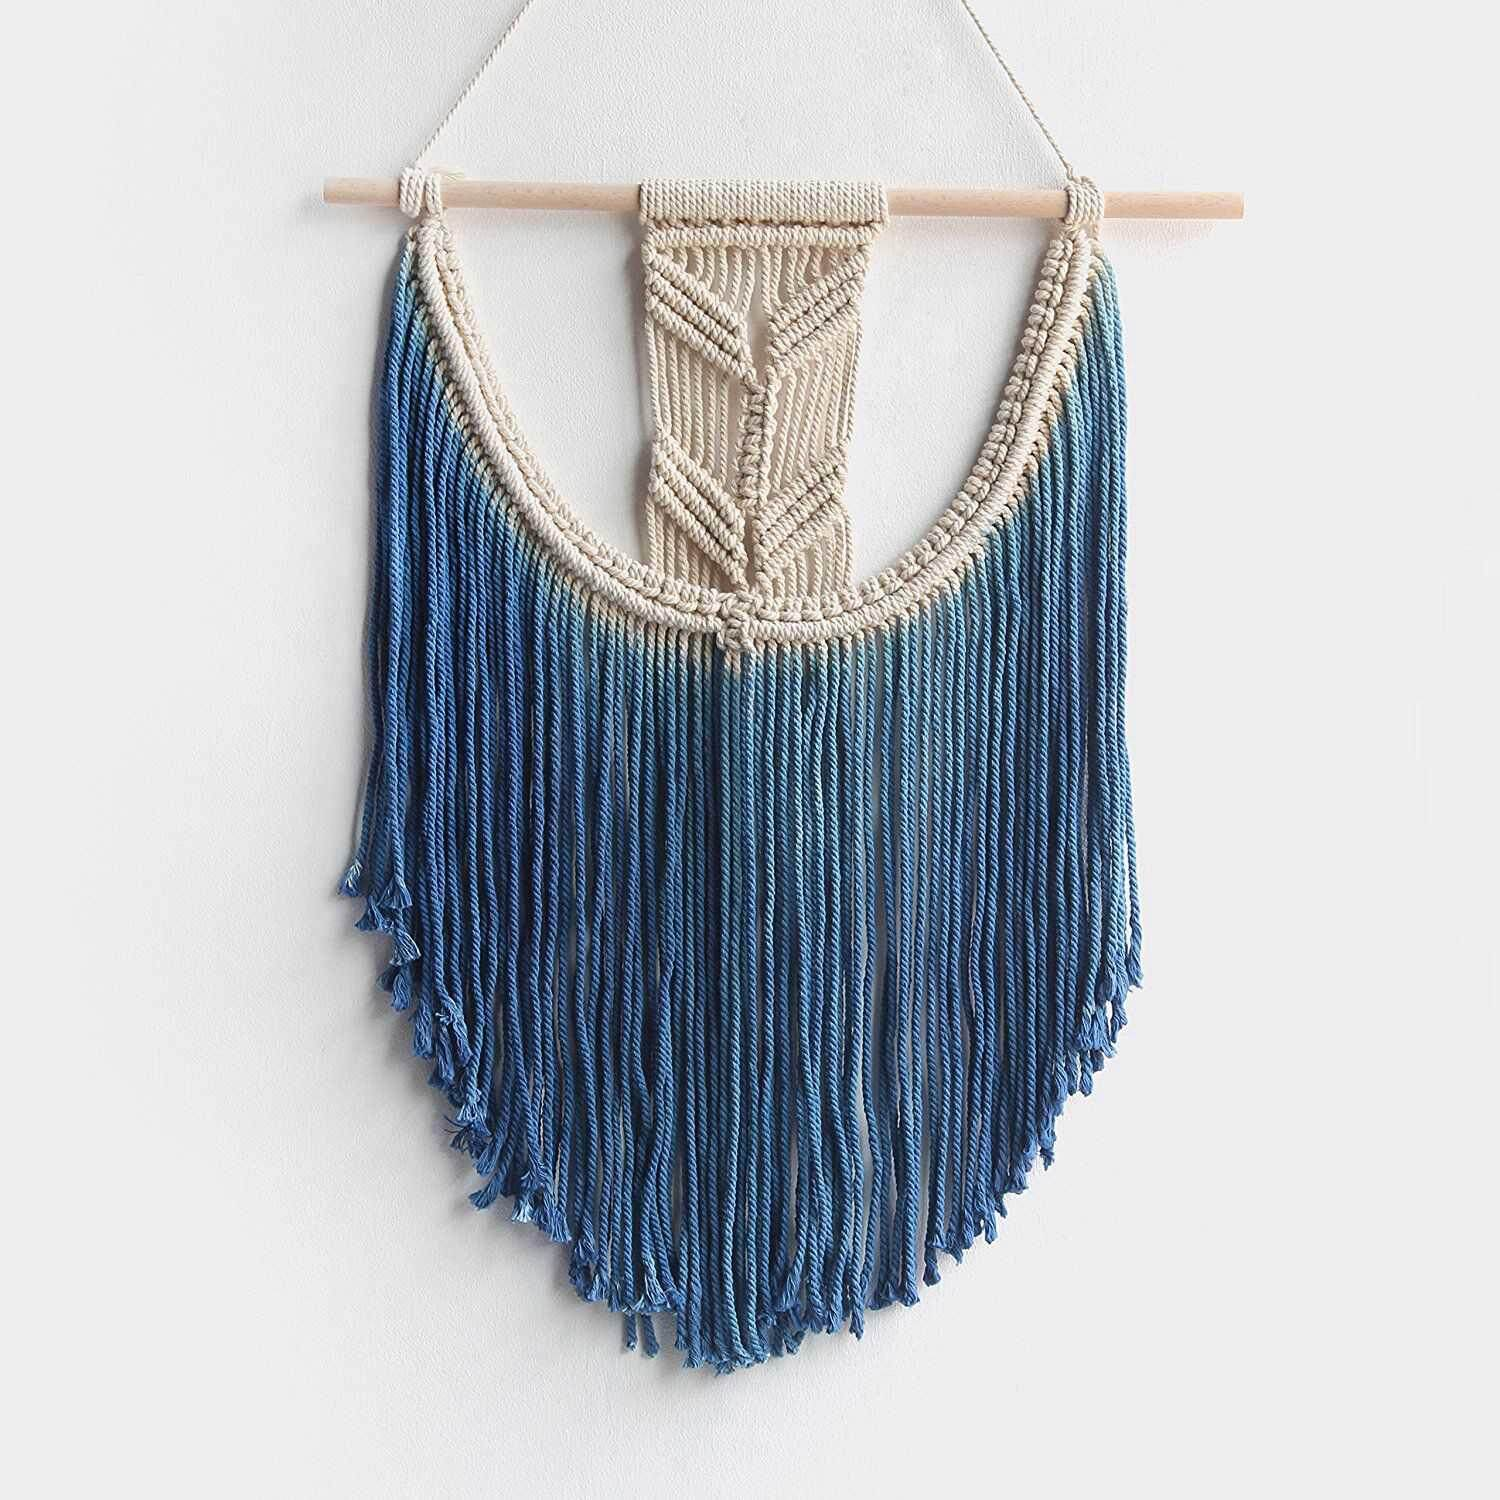 Macrame Wall Hanging Tapestry Hand Woven Pendant Decoration House Ceremony Living Room Home Furnishing Accessories Mandala Blue Free Shipping